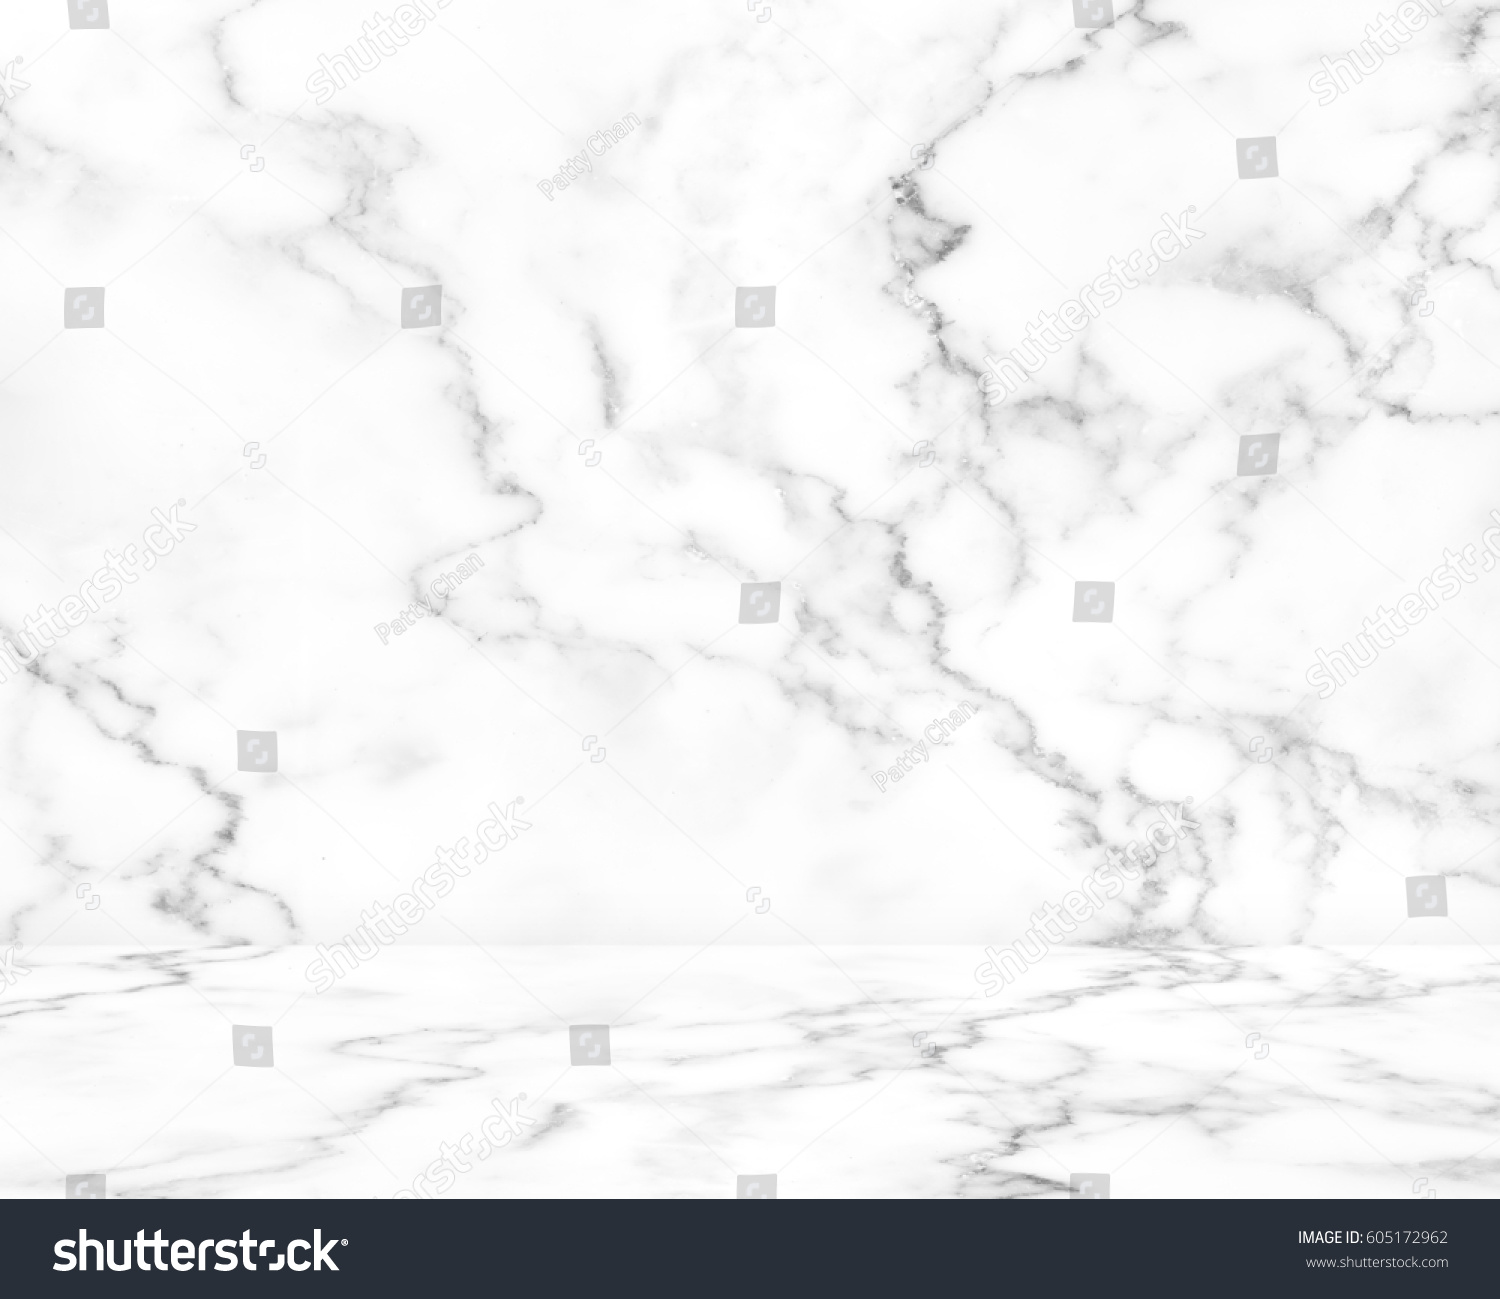 Abstract Natural White Marble Texture Background Stock Photo ... for White Marble Table Top View  146hul